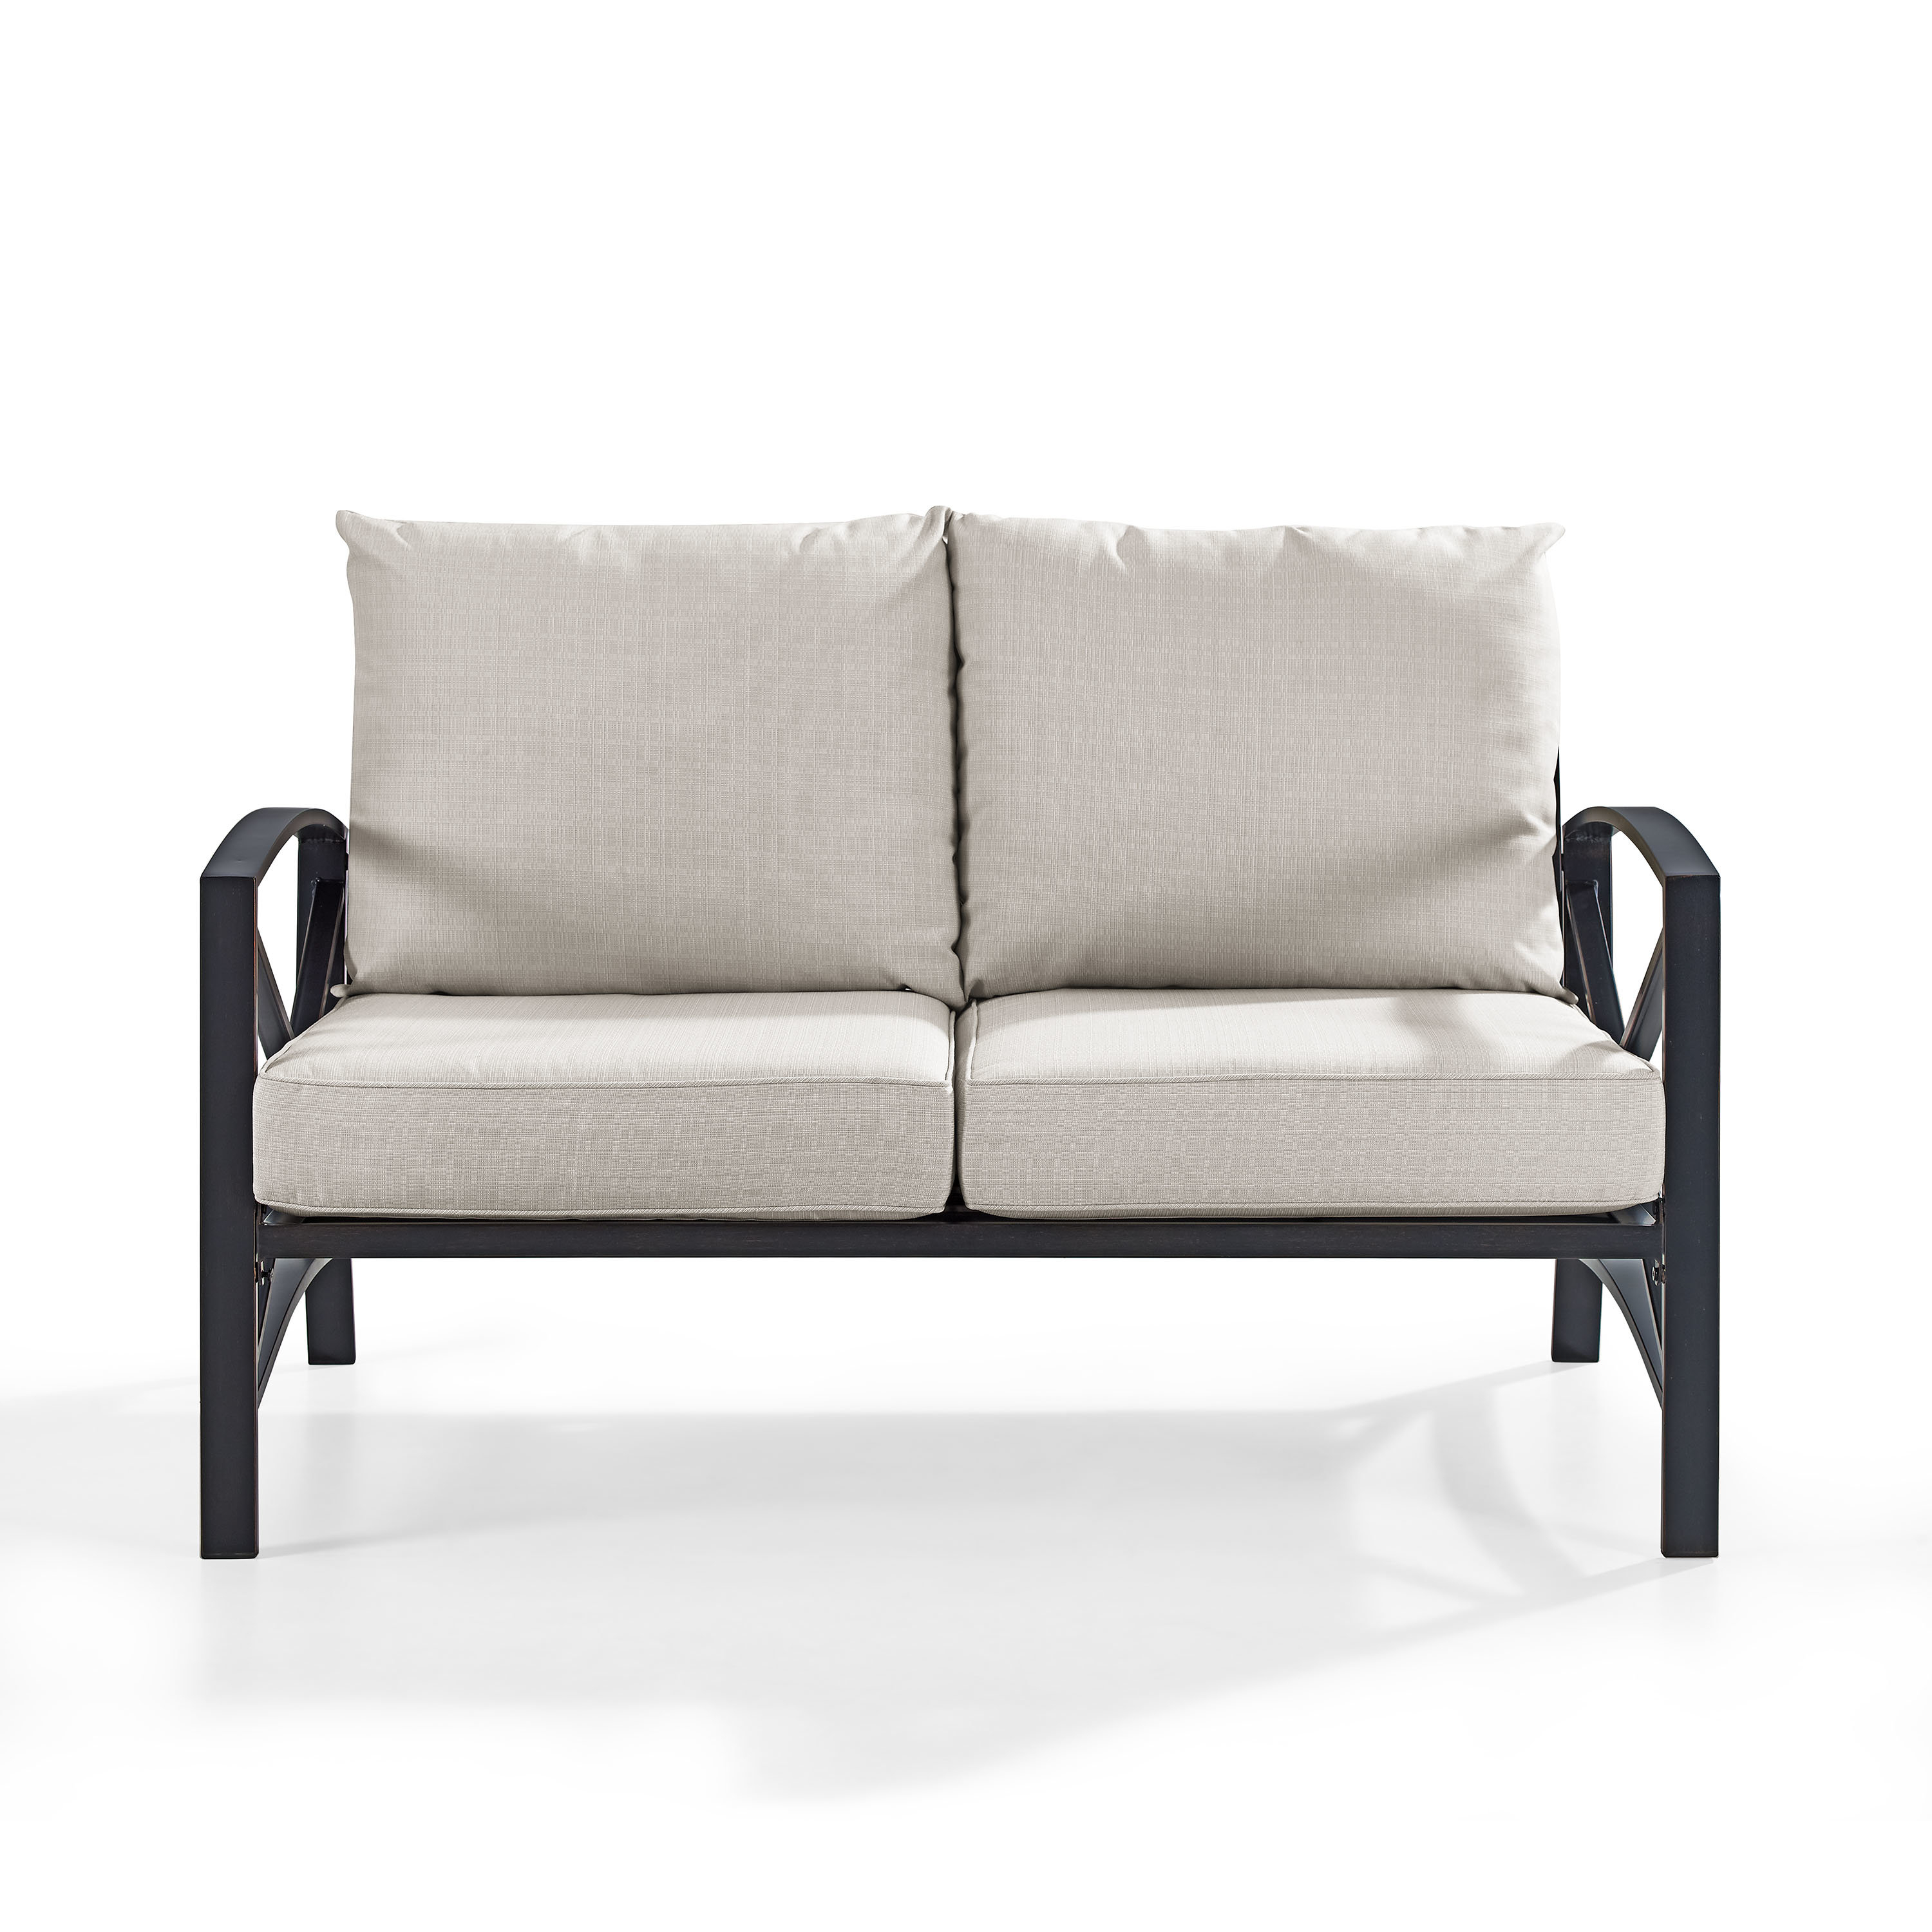 Popular Bristol Loveseats With Cushions Pertaining To Freitag Loveseat With Cushions (View 14 of 20)